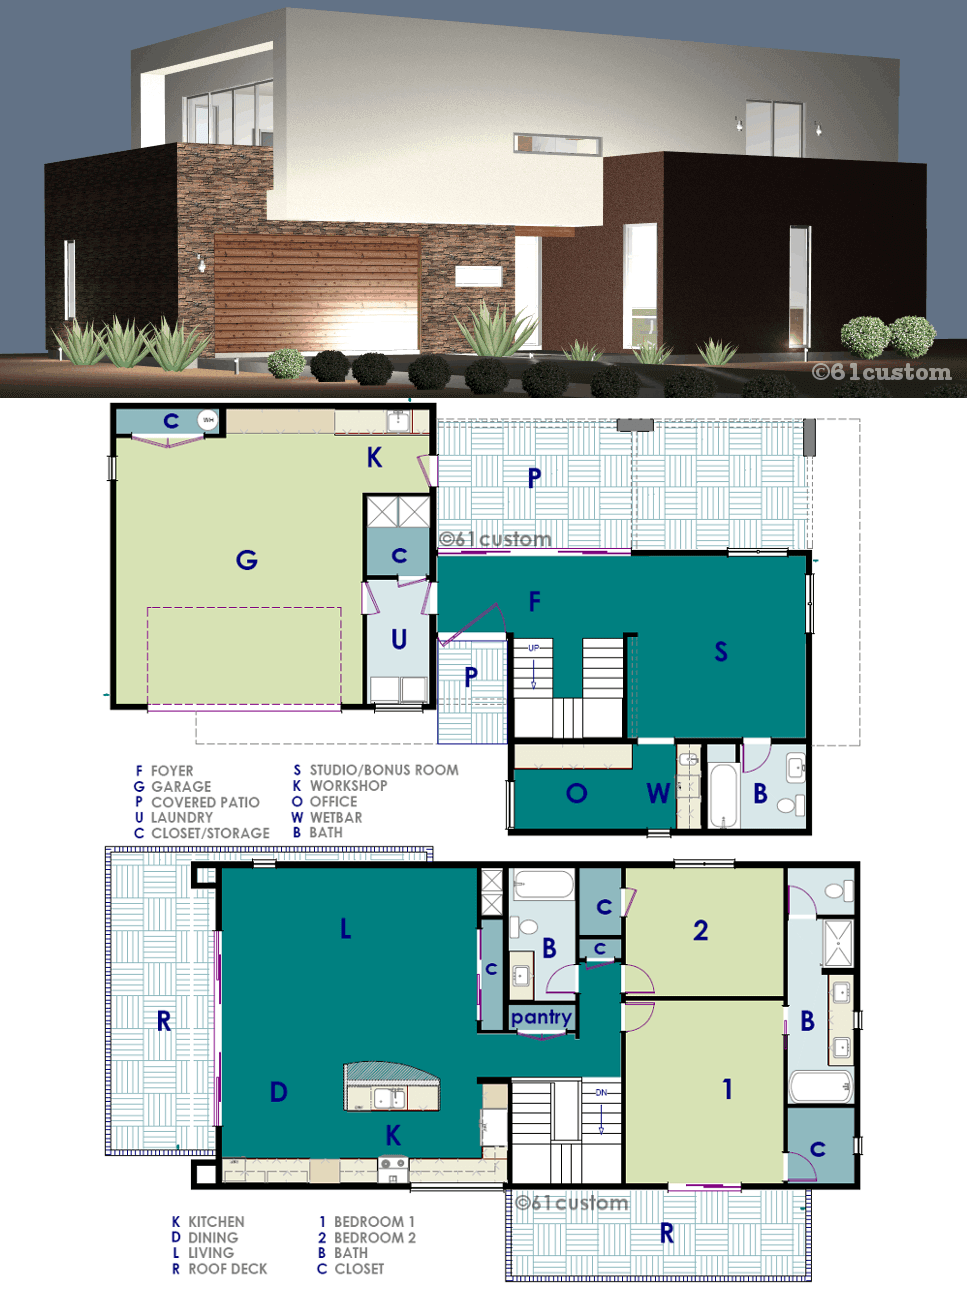 Ultra modern live work house plan 61custom for House blueprints